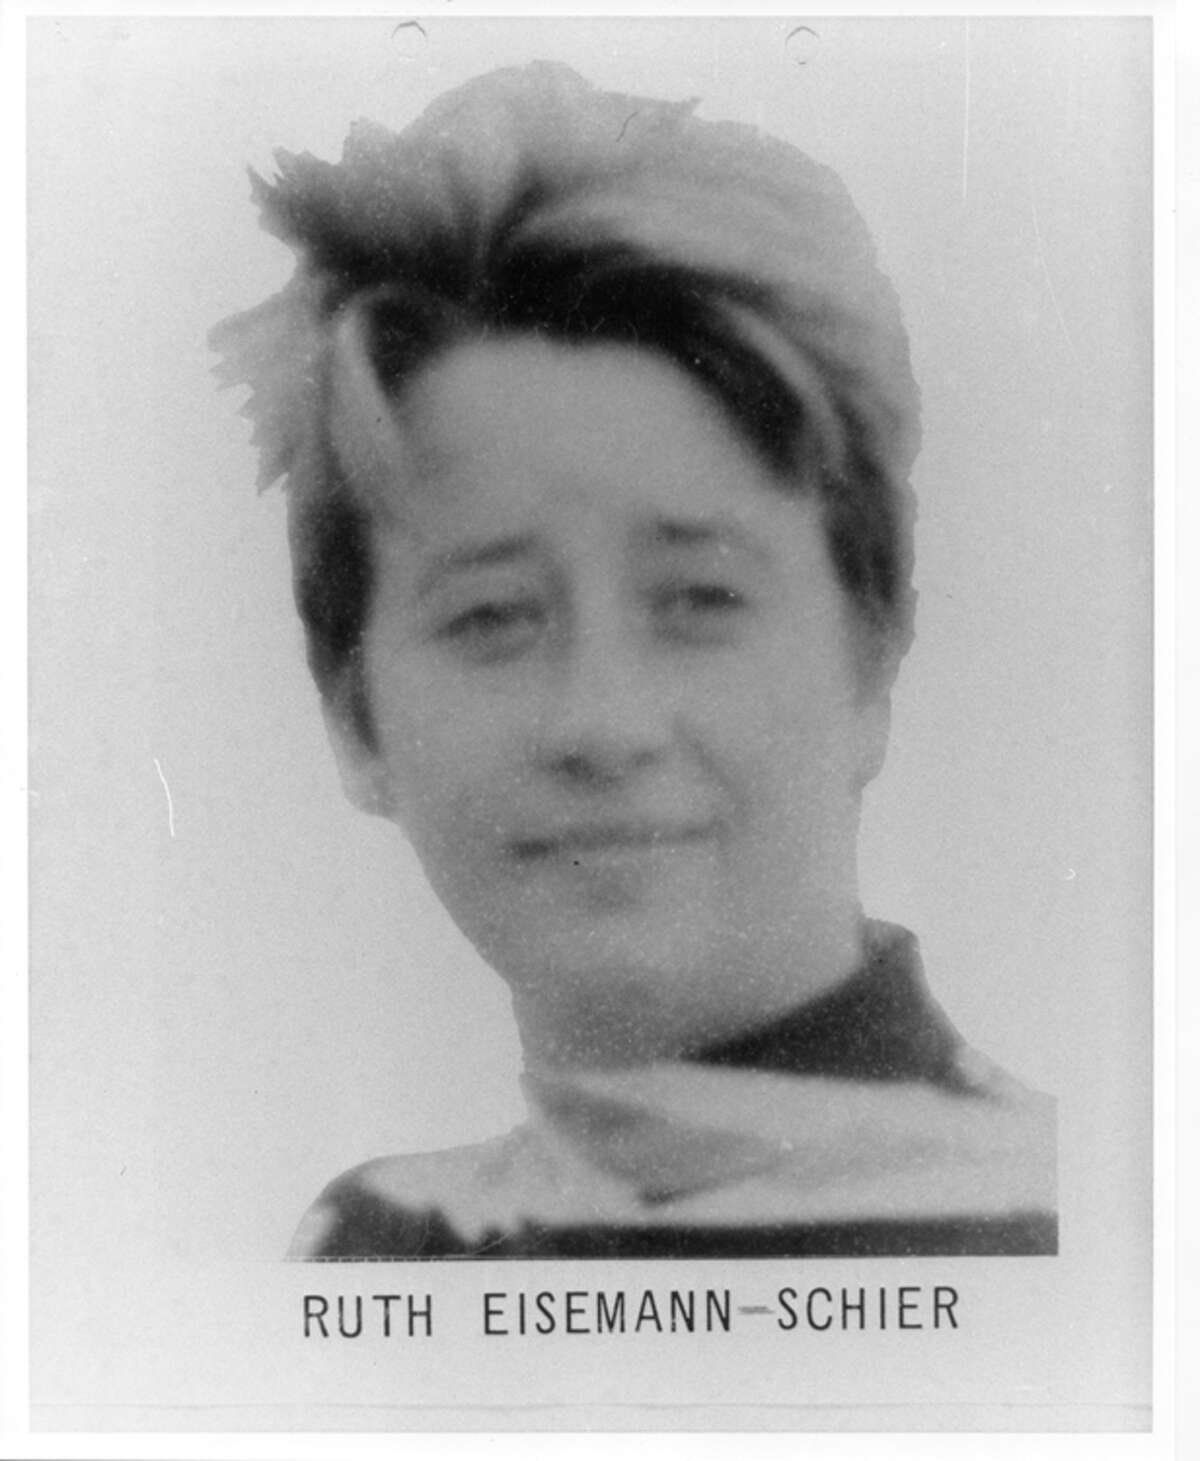 Ruth Eisemann-Schier Eisemann-Schier was the first woman put on the list on December 28, 1968. She and an accomplice kidnapped a wealthy real estate's developer's daughter and held her for ransom in Atlanta. She was apprehended March 5, 1969 in Oklahoma.